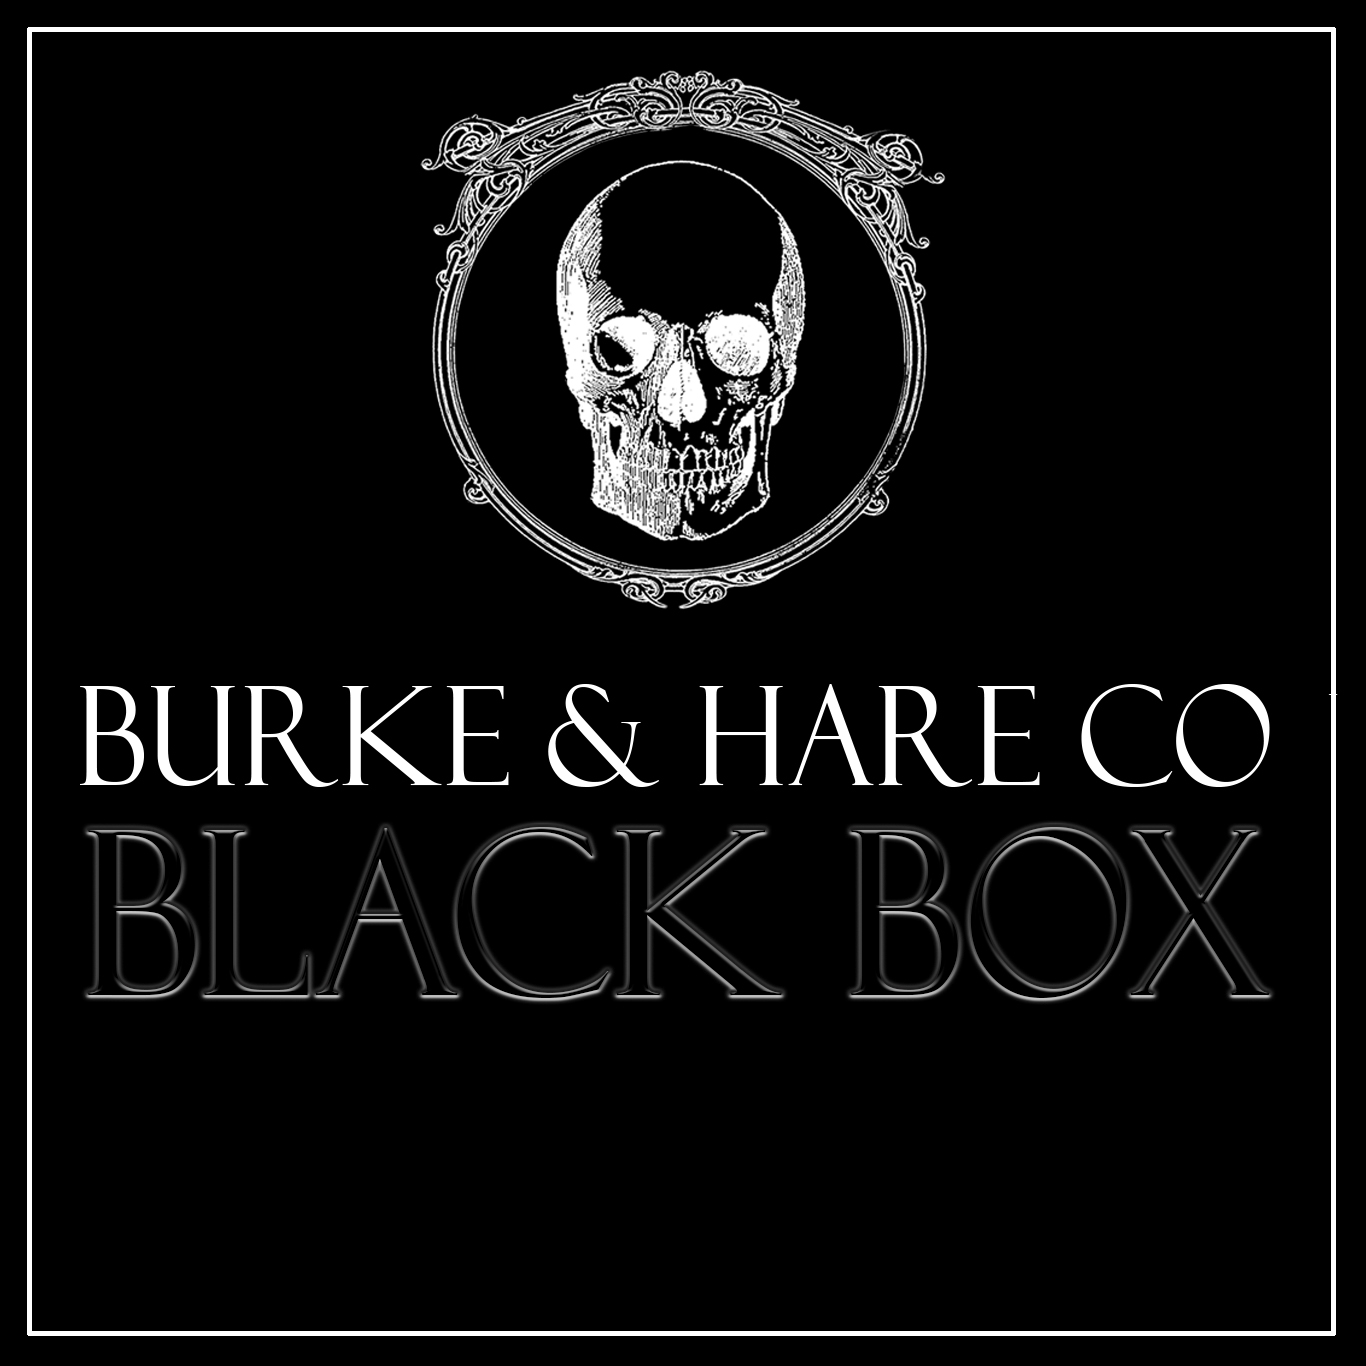 the Black Box - Our Quarterly Subscription Box!HALLOWEEN PREVIEW - SOLD OUT! - Shipping in August!Each Quarter we will curate a new box for our subscribers! You will receive a collection of items that will vary from candles, bath products, artwork, special collaborations with artists! Even some retired products from the past that we hear requests to bring back or products from other indie creators and friends of ours! Every season will have a new theme!Each Box Will Always Include:- 1 Full Size Candle!- 1 Bath & Body Item!- Samples for any new upcoming releases! You will be the first to try them!- A Guide for the items contained!- & Various Surprise Items relating to the theme of the box!